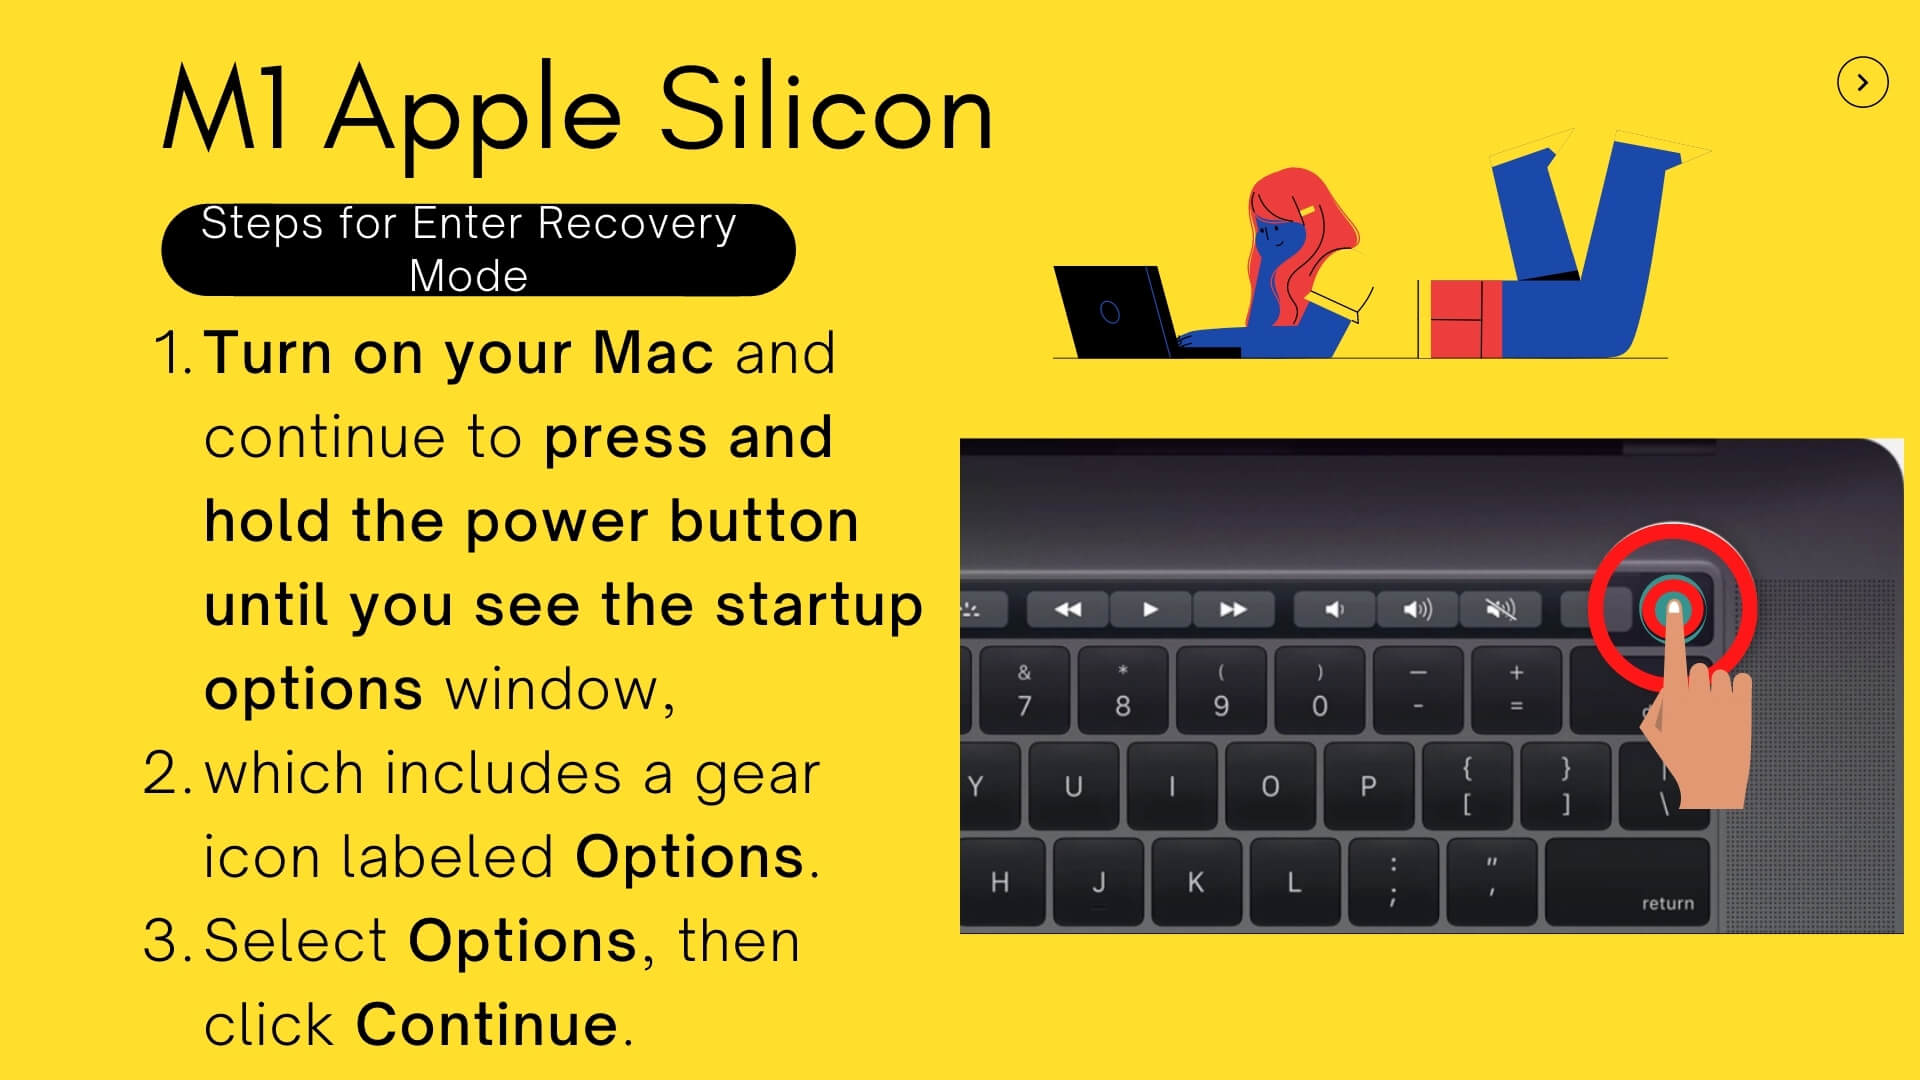 M1 Apple Silicon Recovery Mode